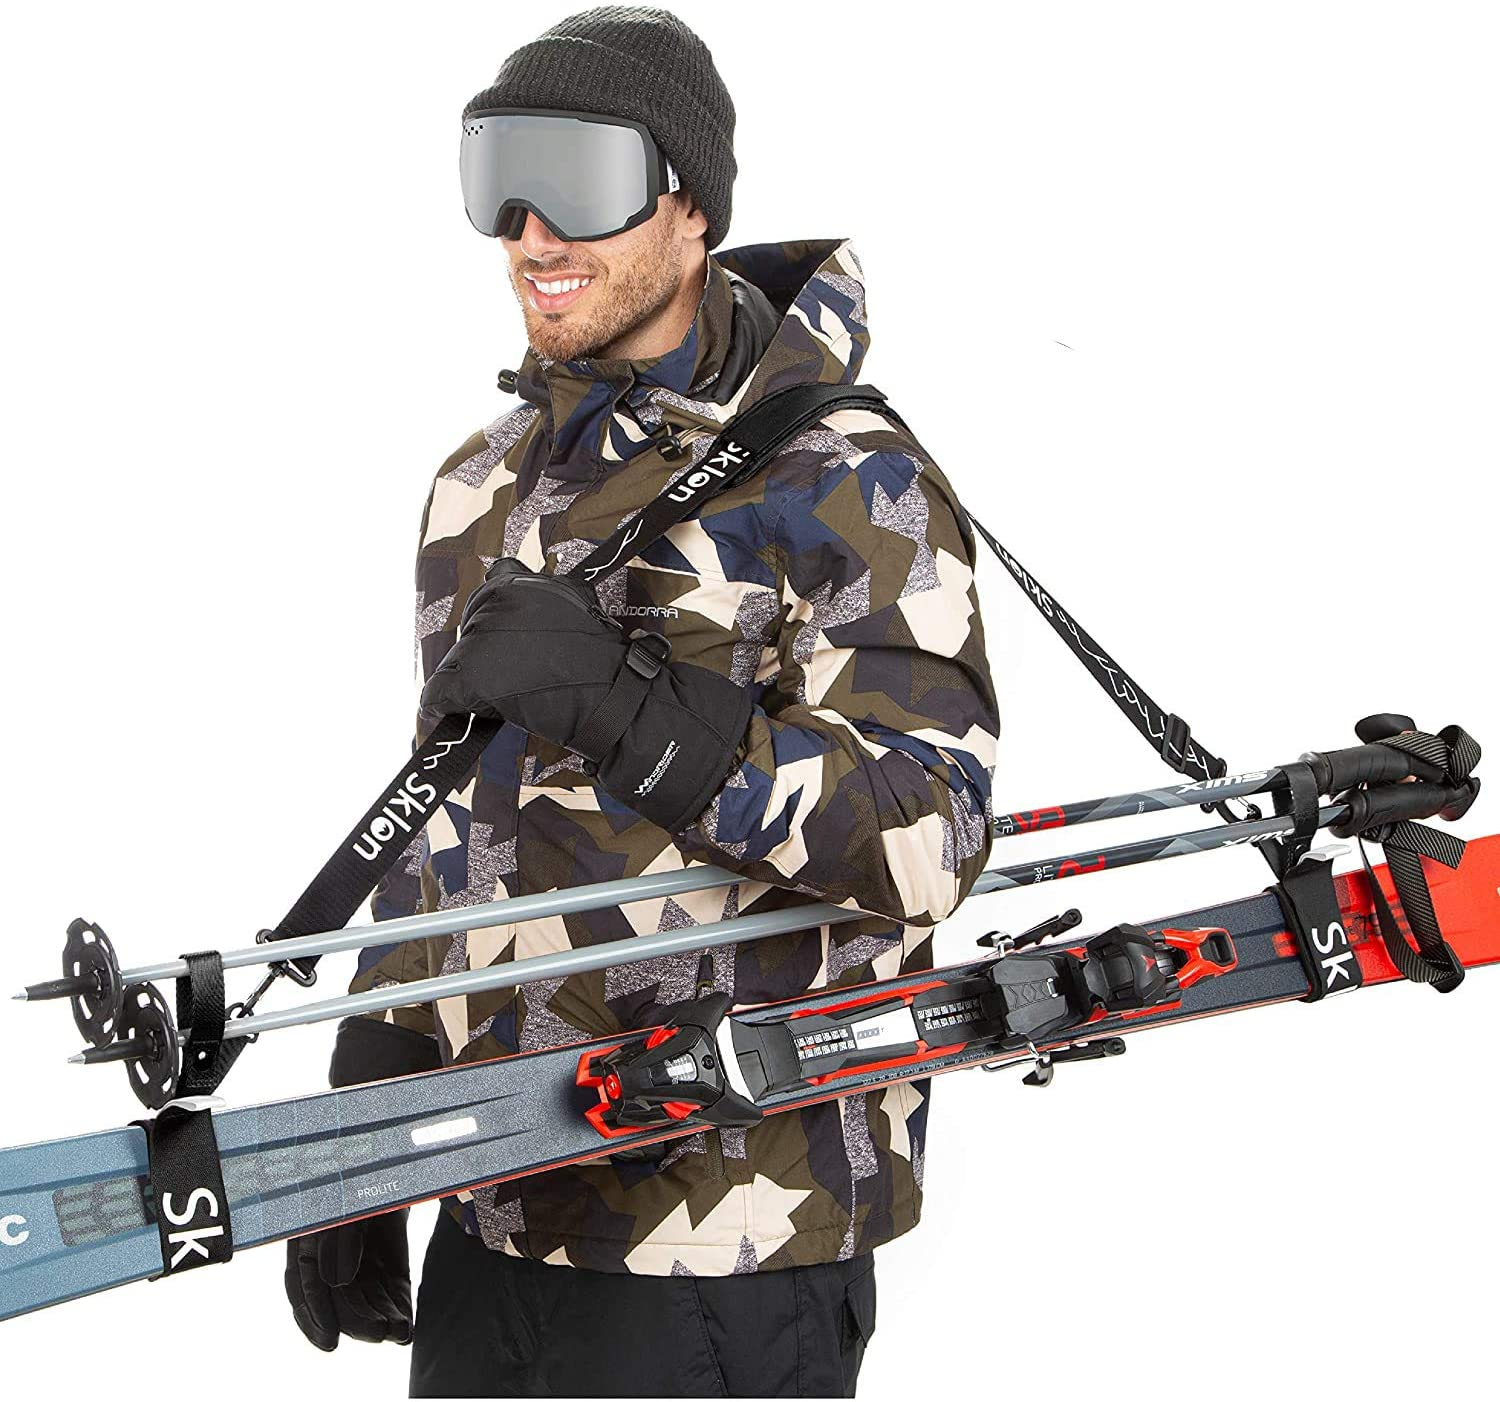 gifts-for-skiers-ski-strap